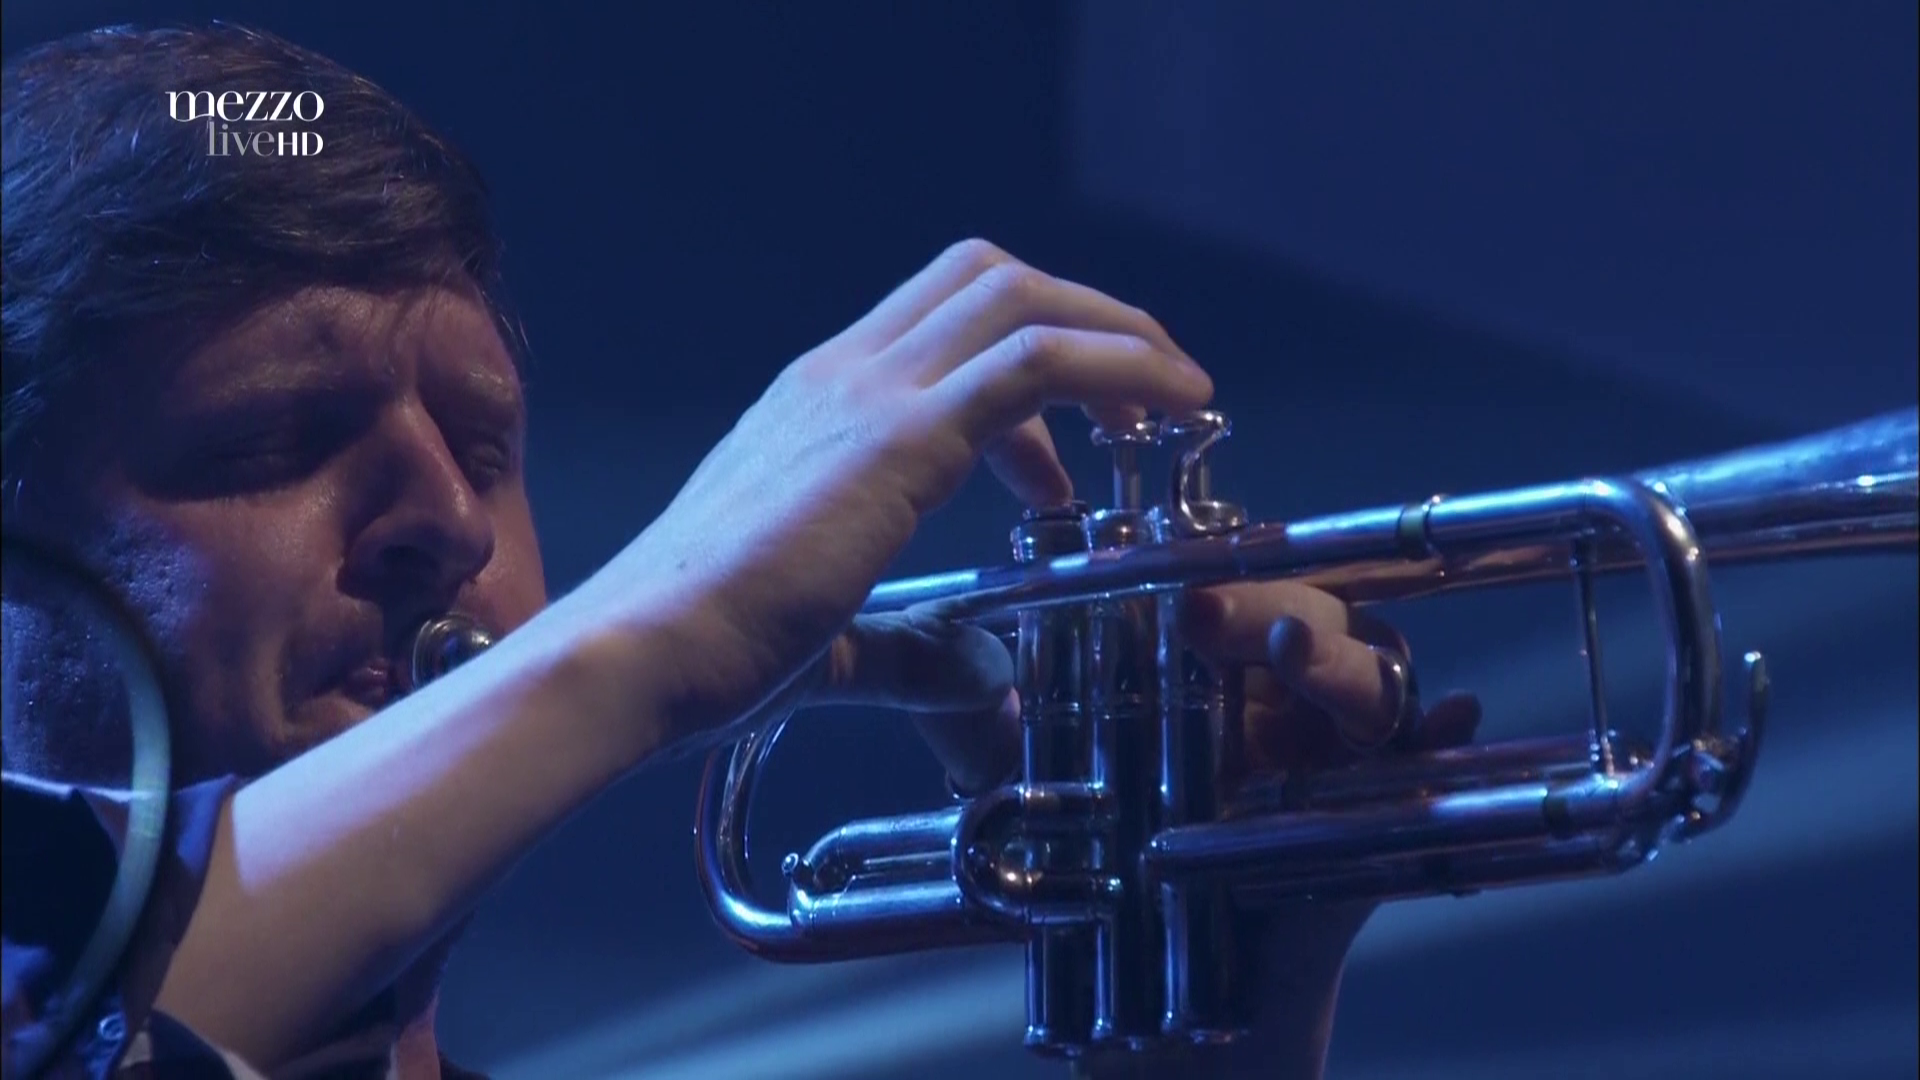 2017 Snarky Puppy - Live In Paris [HDTV 1080i] 3